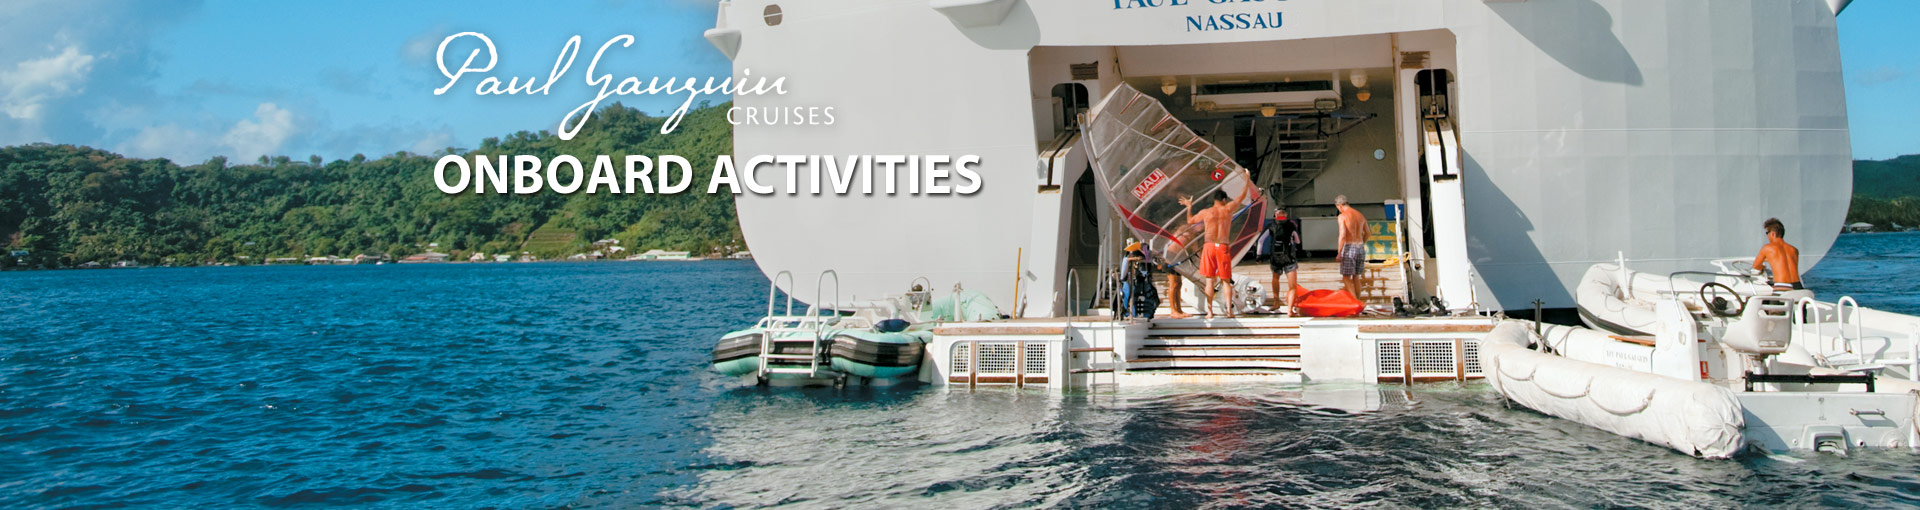 Paul Gauguin Cruises Onboard Activities